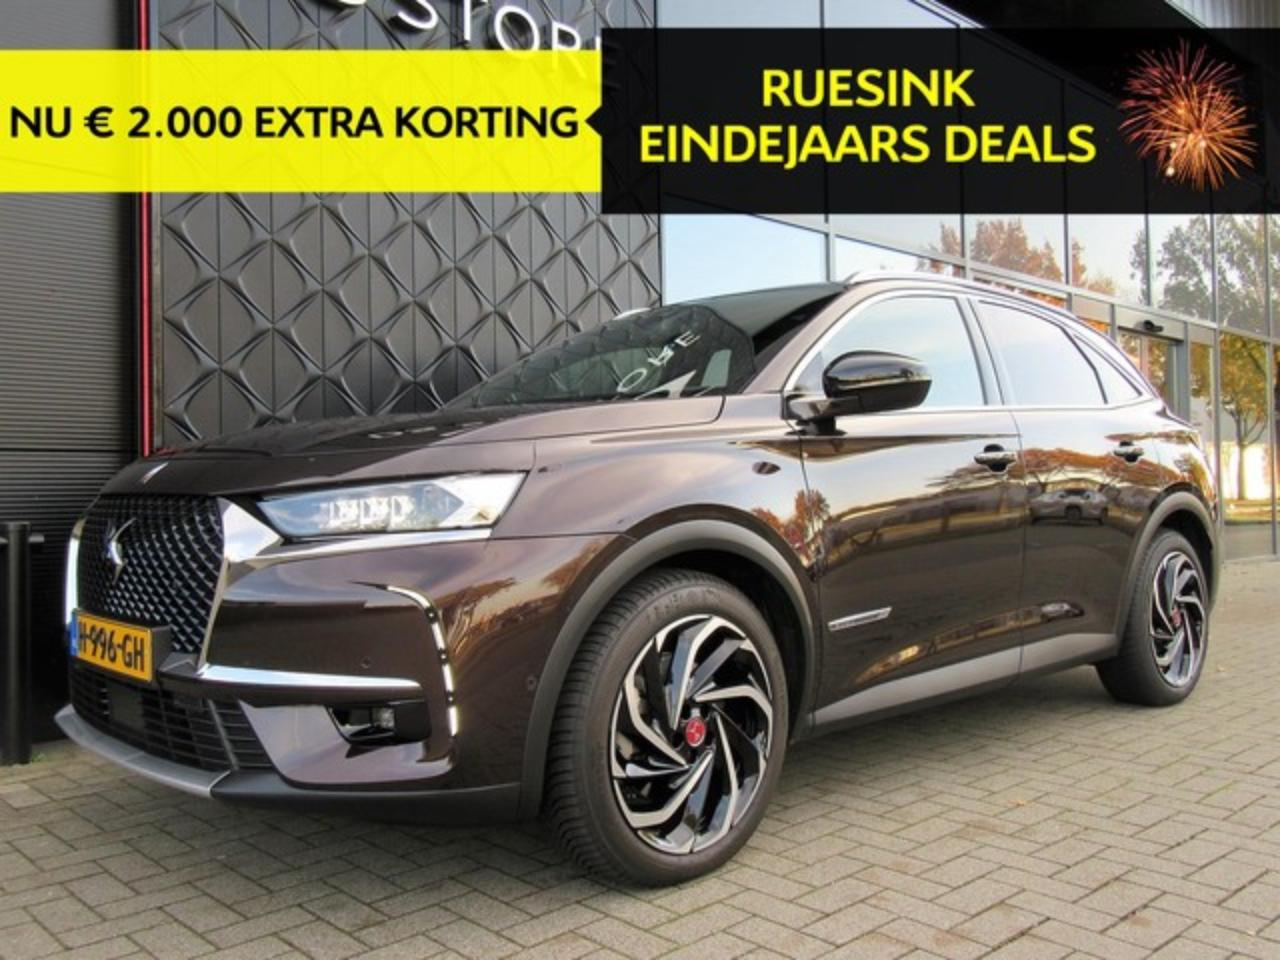 Ds Ds 7 Crossback e-TENSE HYBRID 300pk AUTOMAAT 4x4 EXECUTIVE/LEER/N